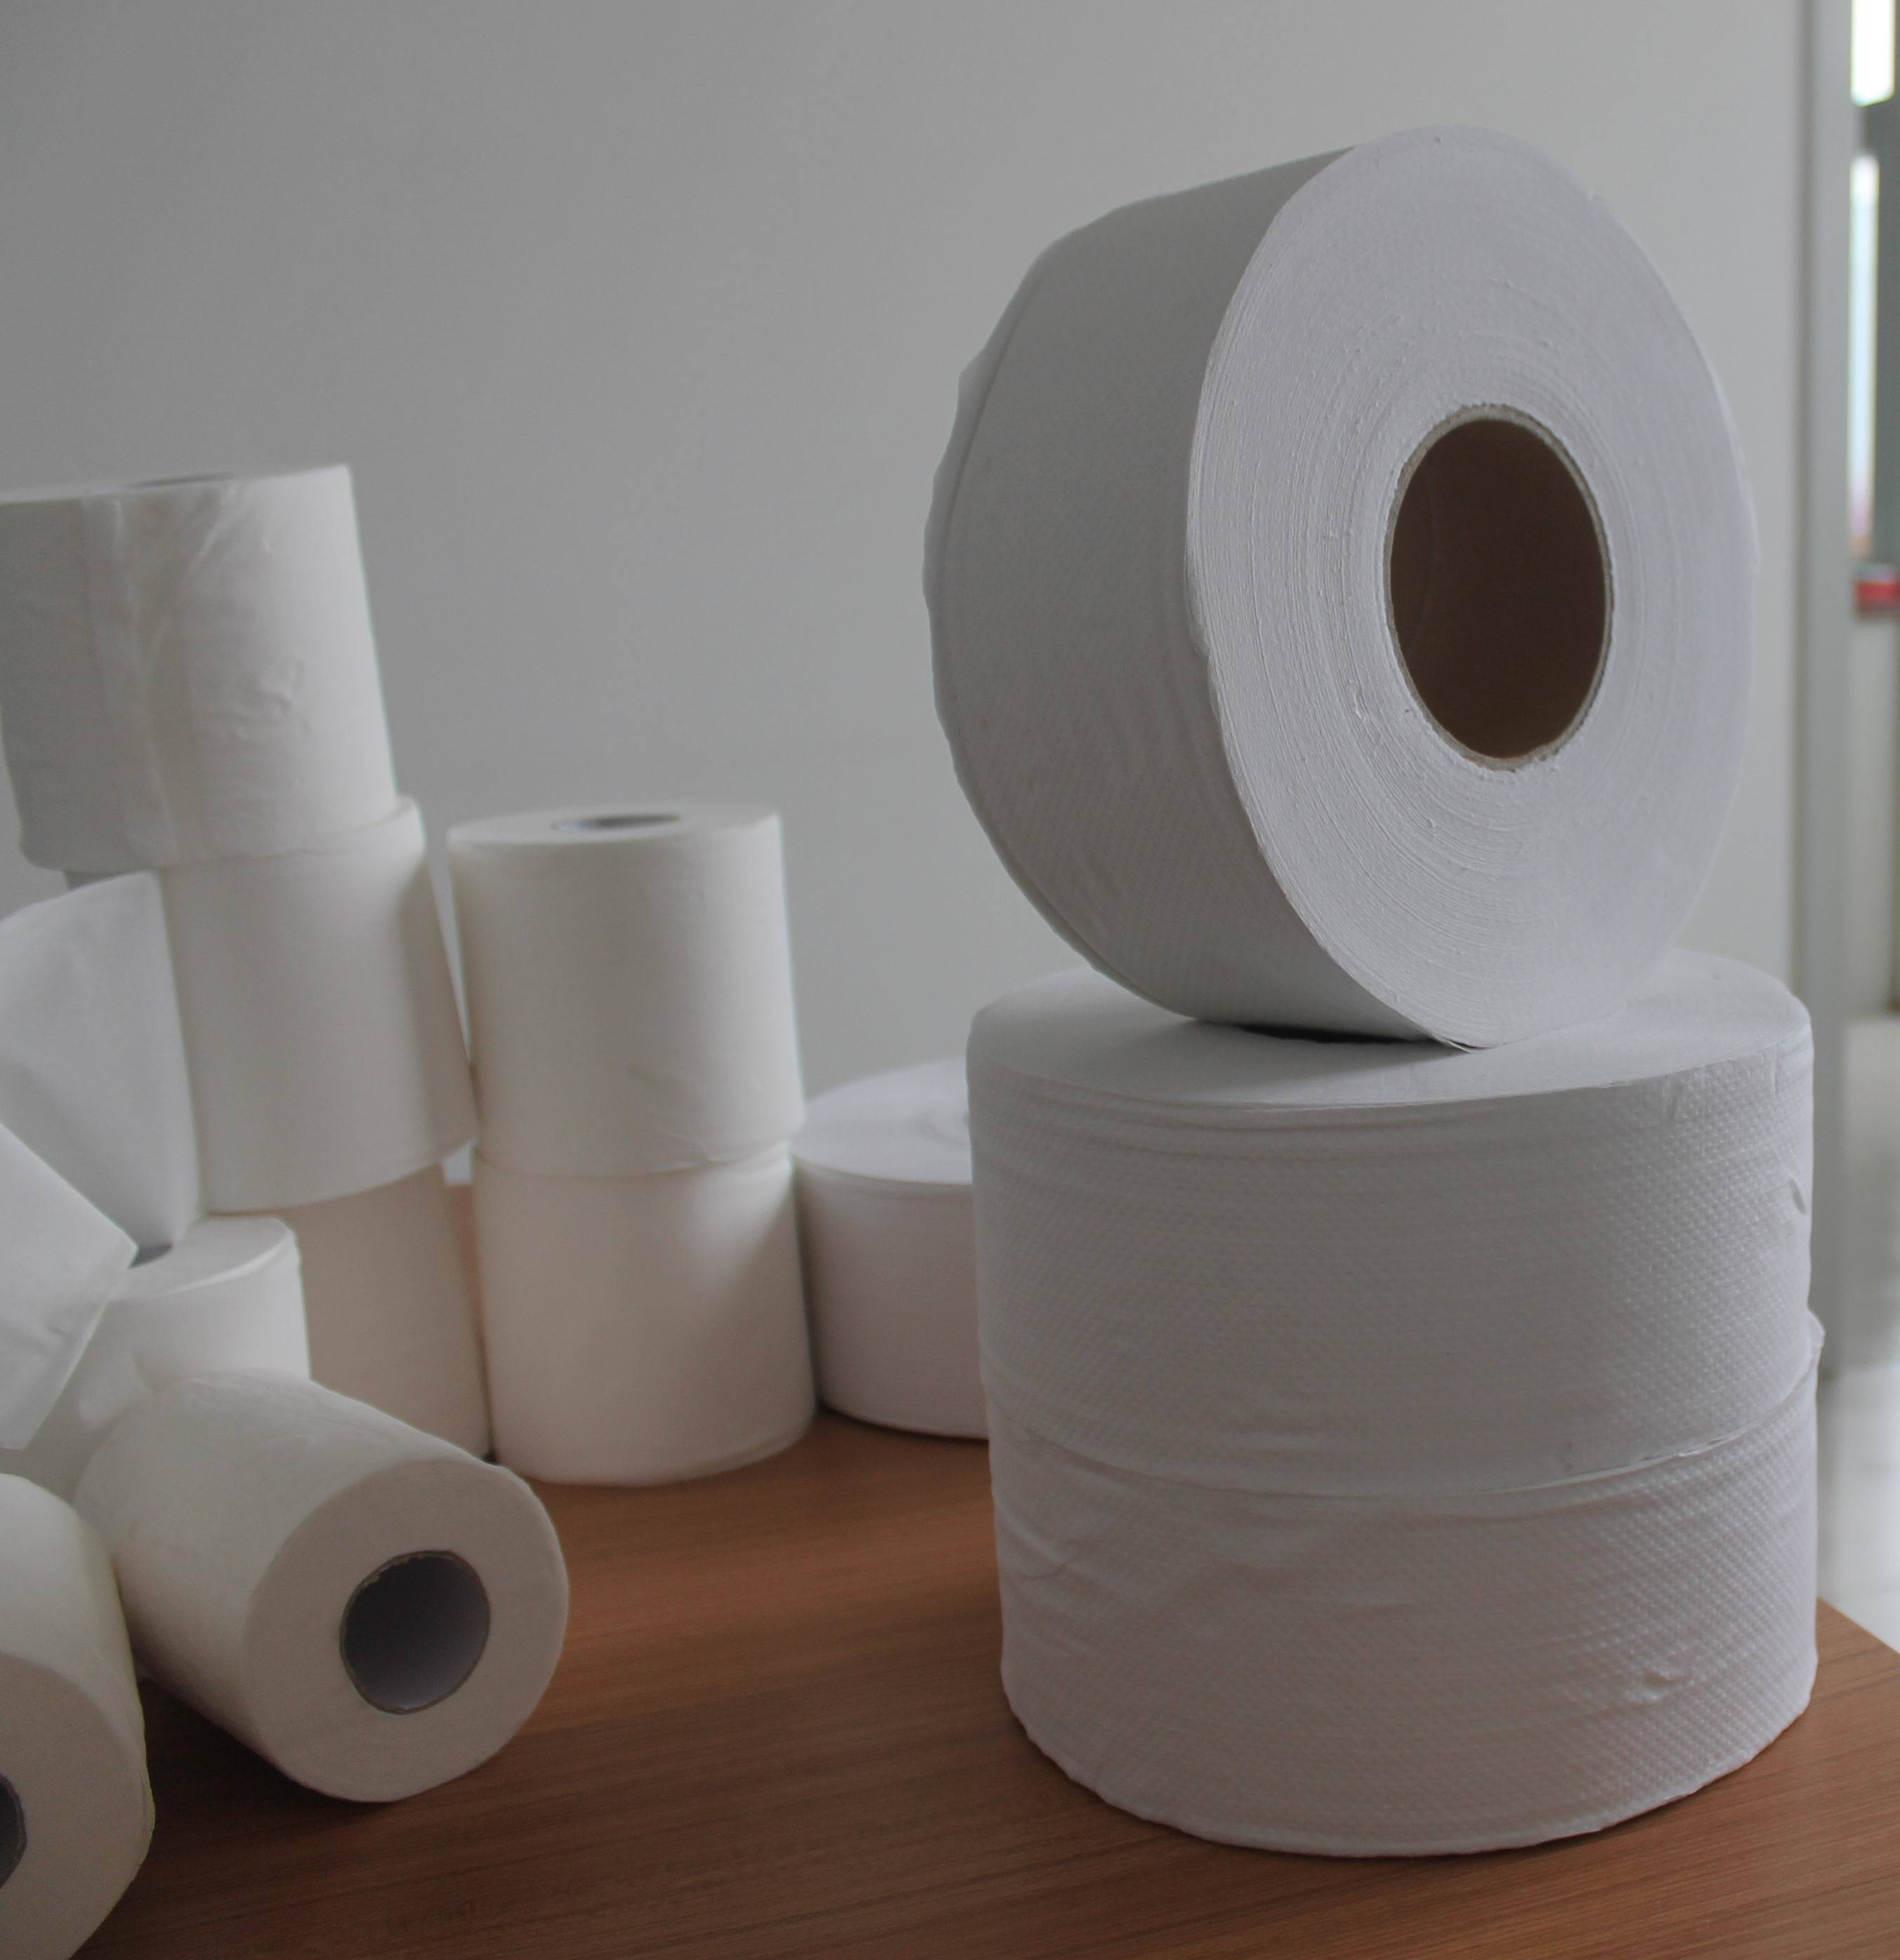 Toilet Paper and Mini Jumbo Roll Tissue for Commercial Use